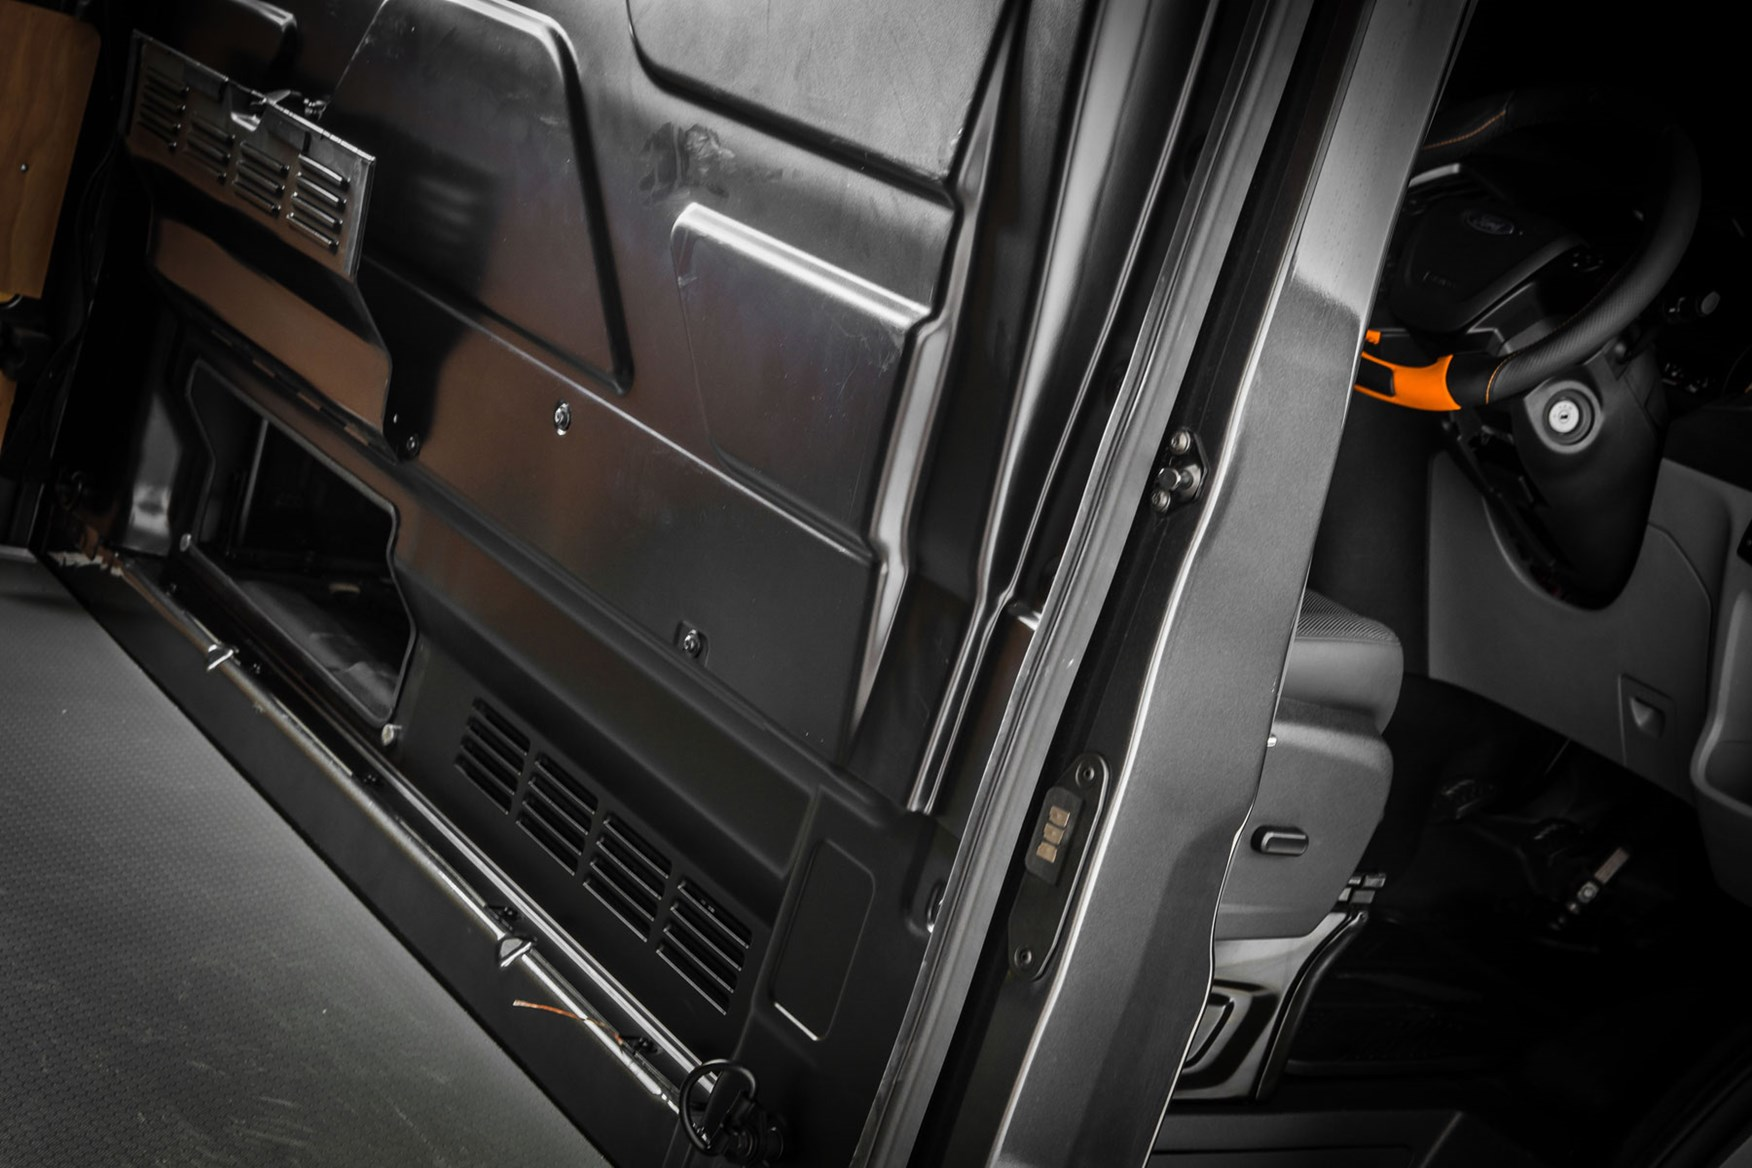 0781d554b1 ... Ford Transit Guy Martin Edition review - load-through hatch in bulkhead  ...